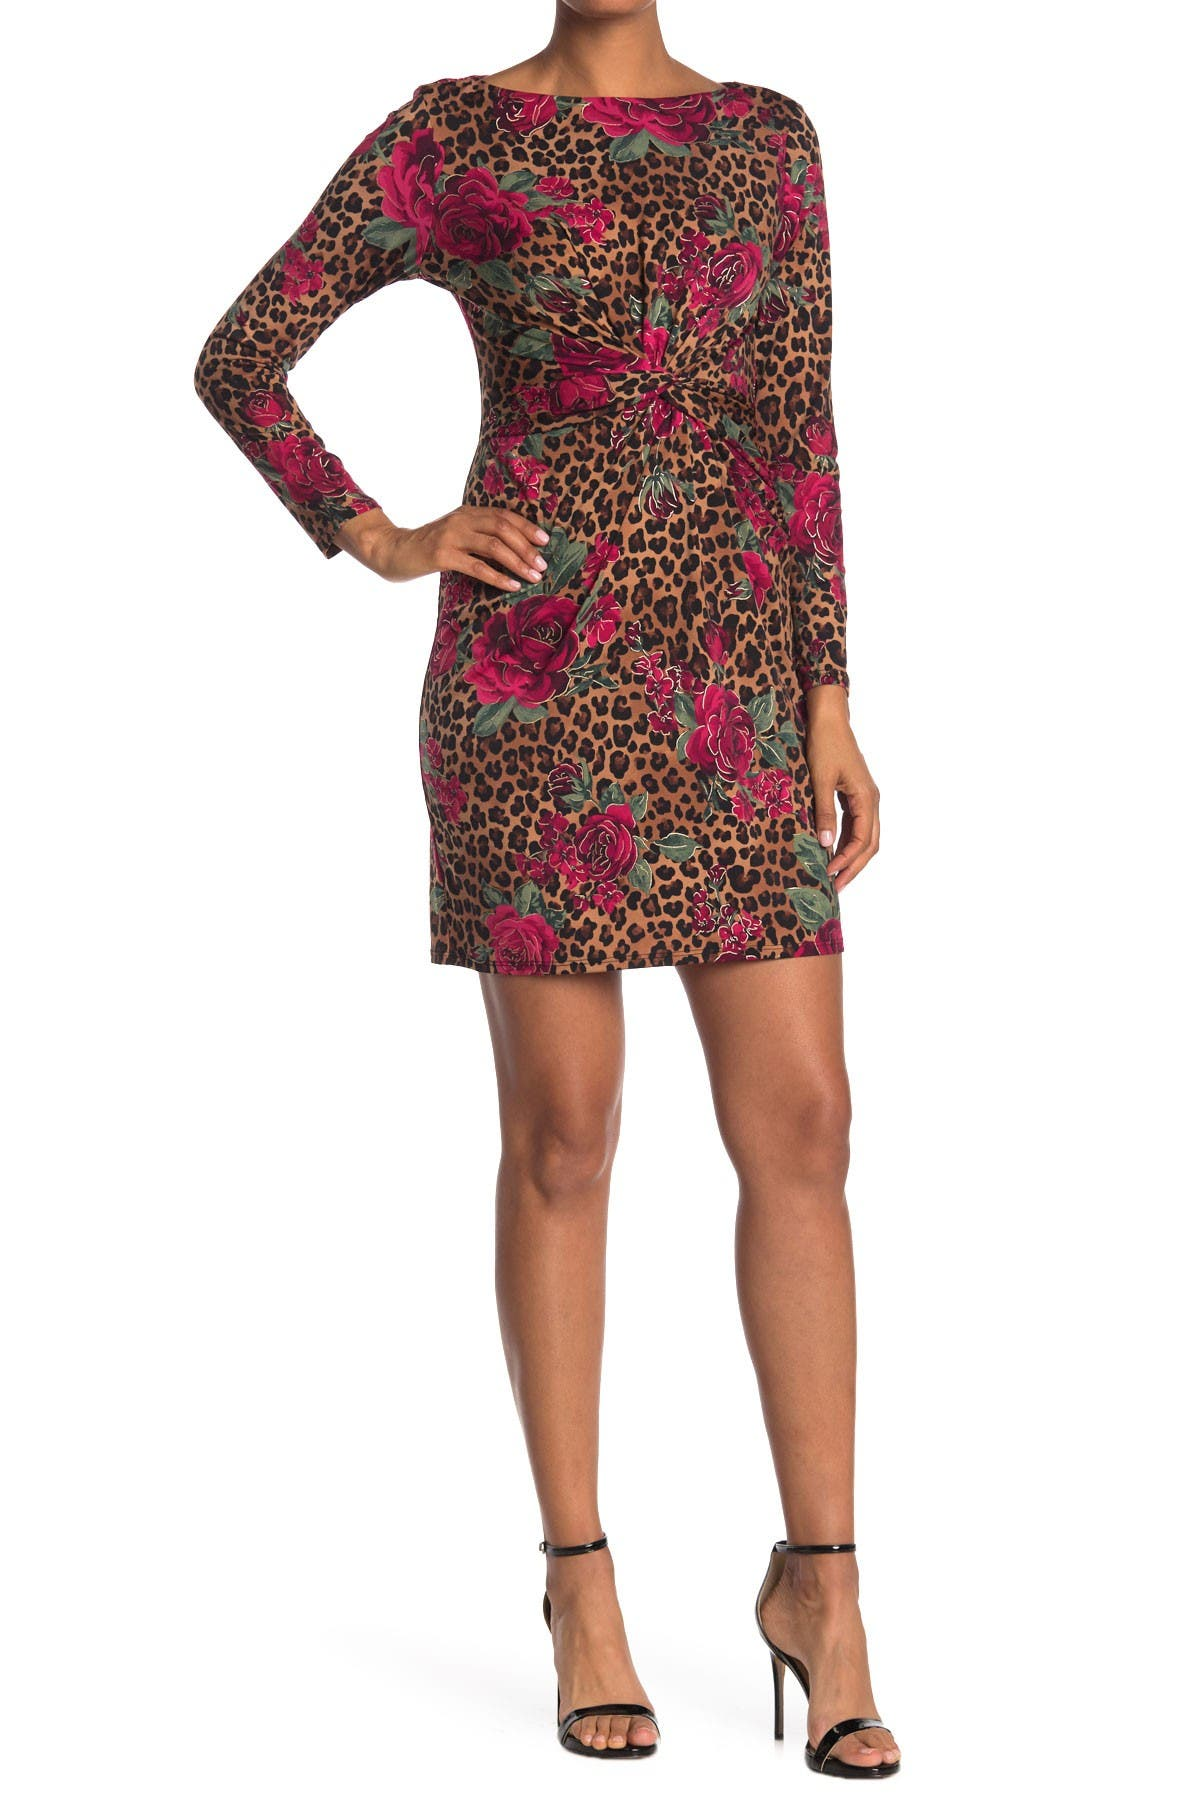 Image of TASH + SOPHIE Leopard Floral Front Twist Dress